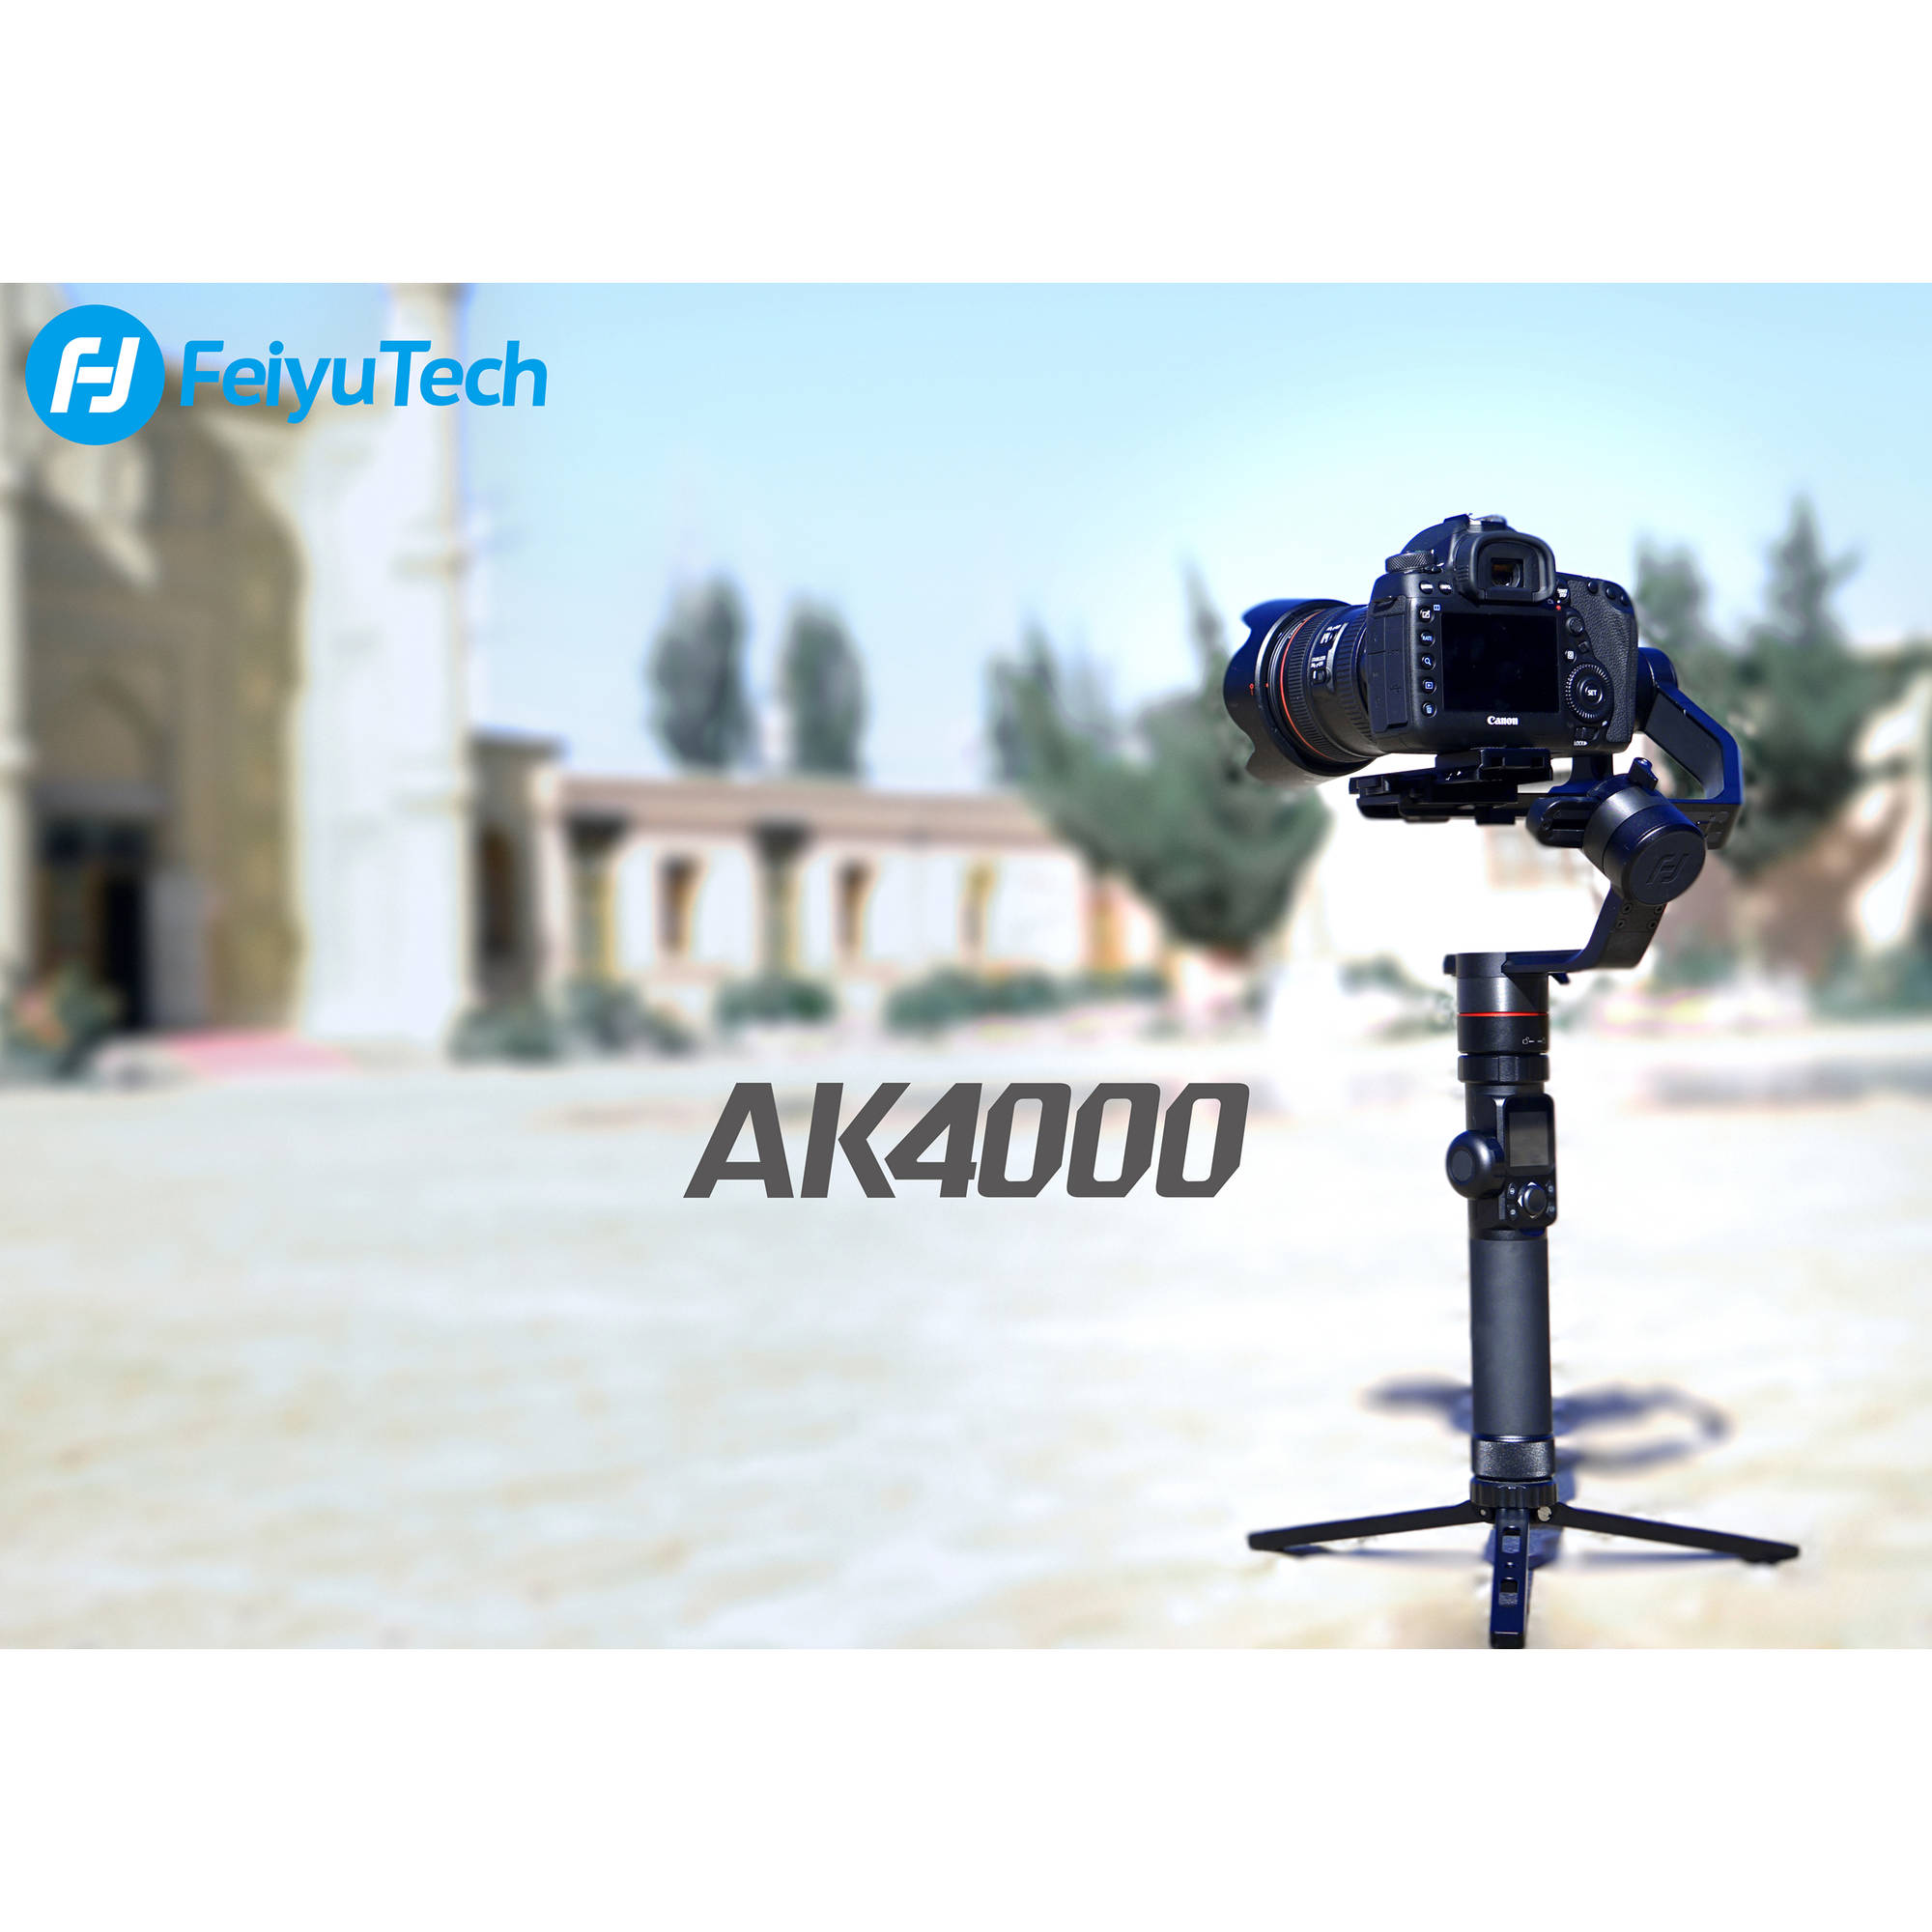 Feiyu AK4000 3-Axis Gimbal Stabilizer on